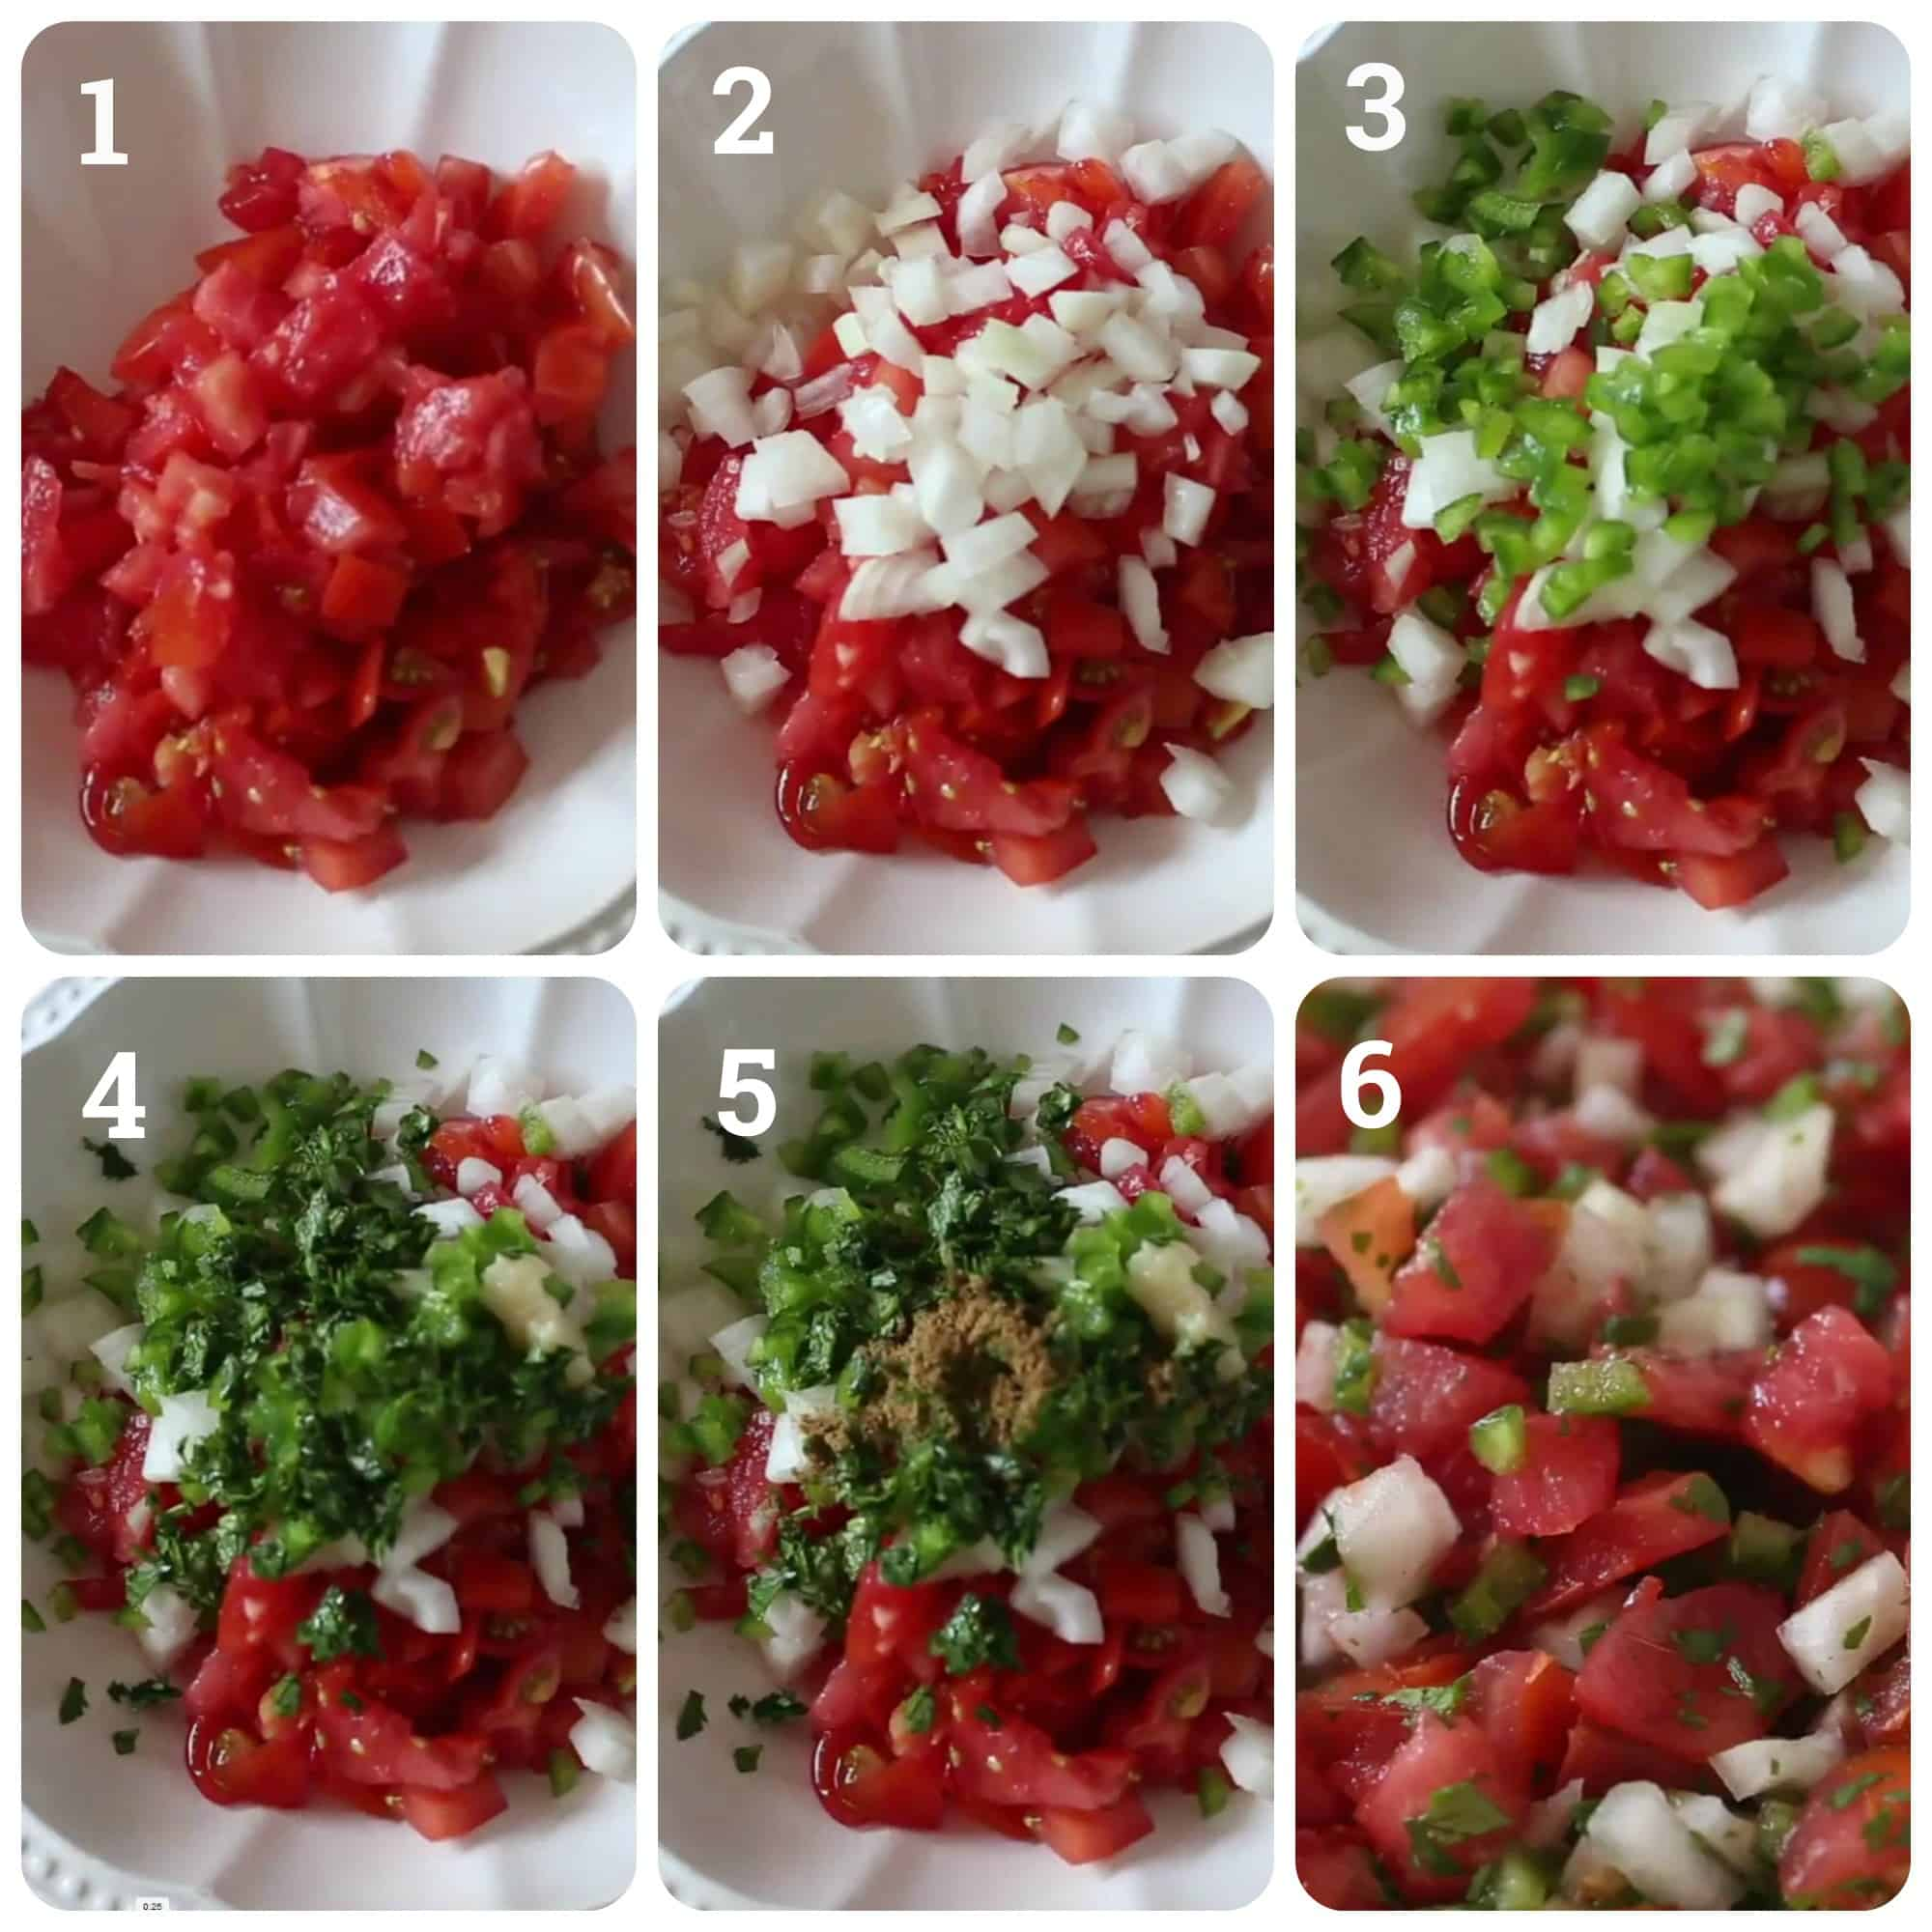 Step by step photos on how to make a fresh salsa recipe